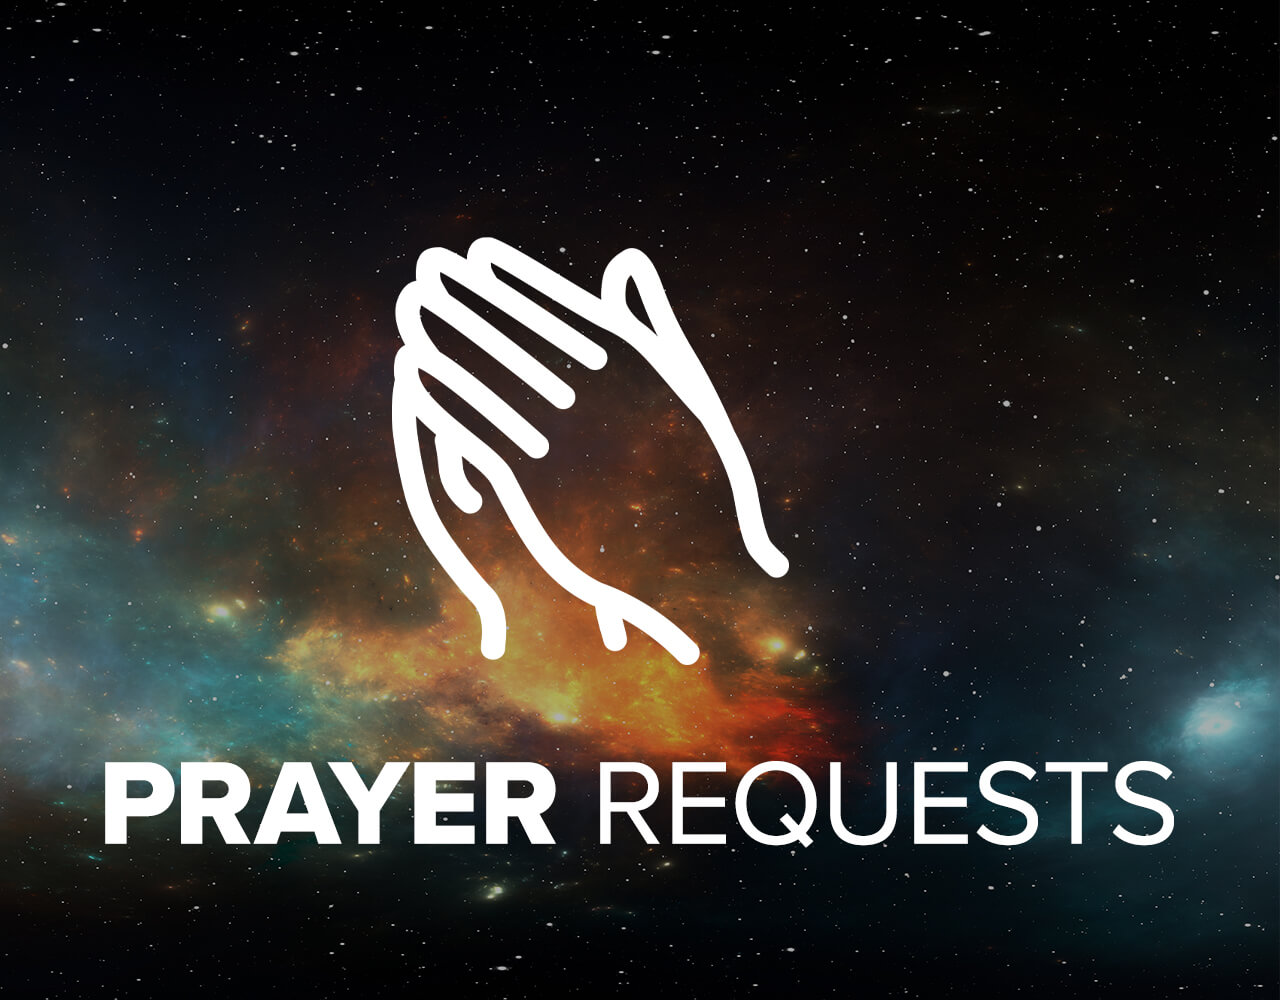 Share your prayer requests with us